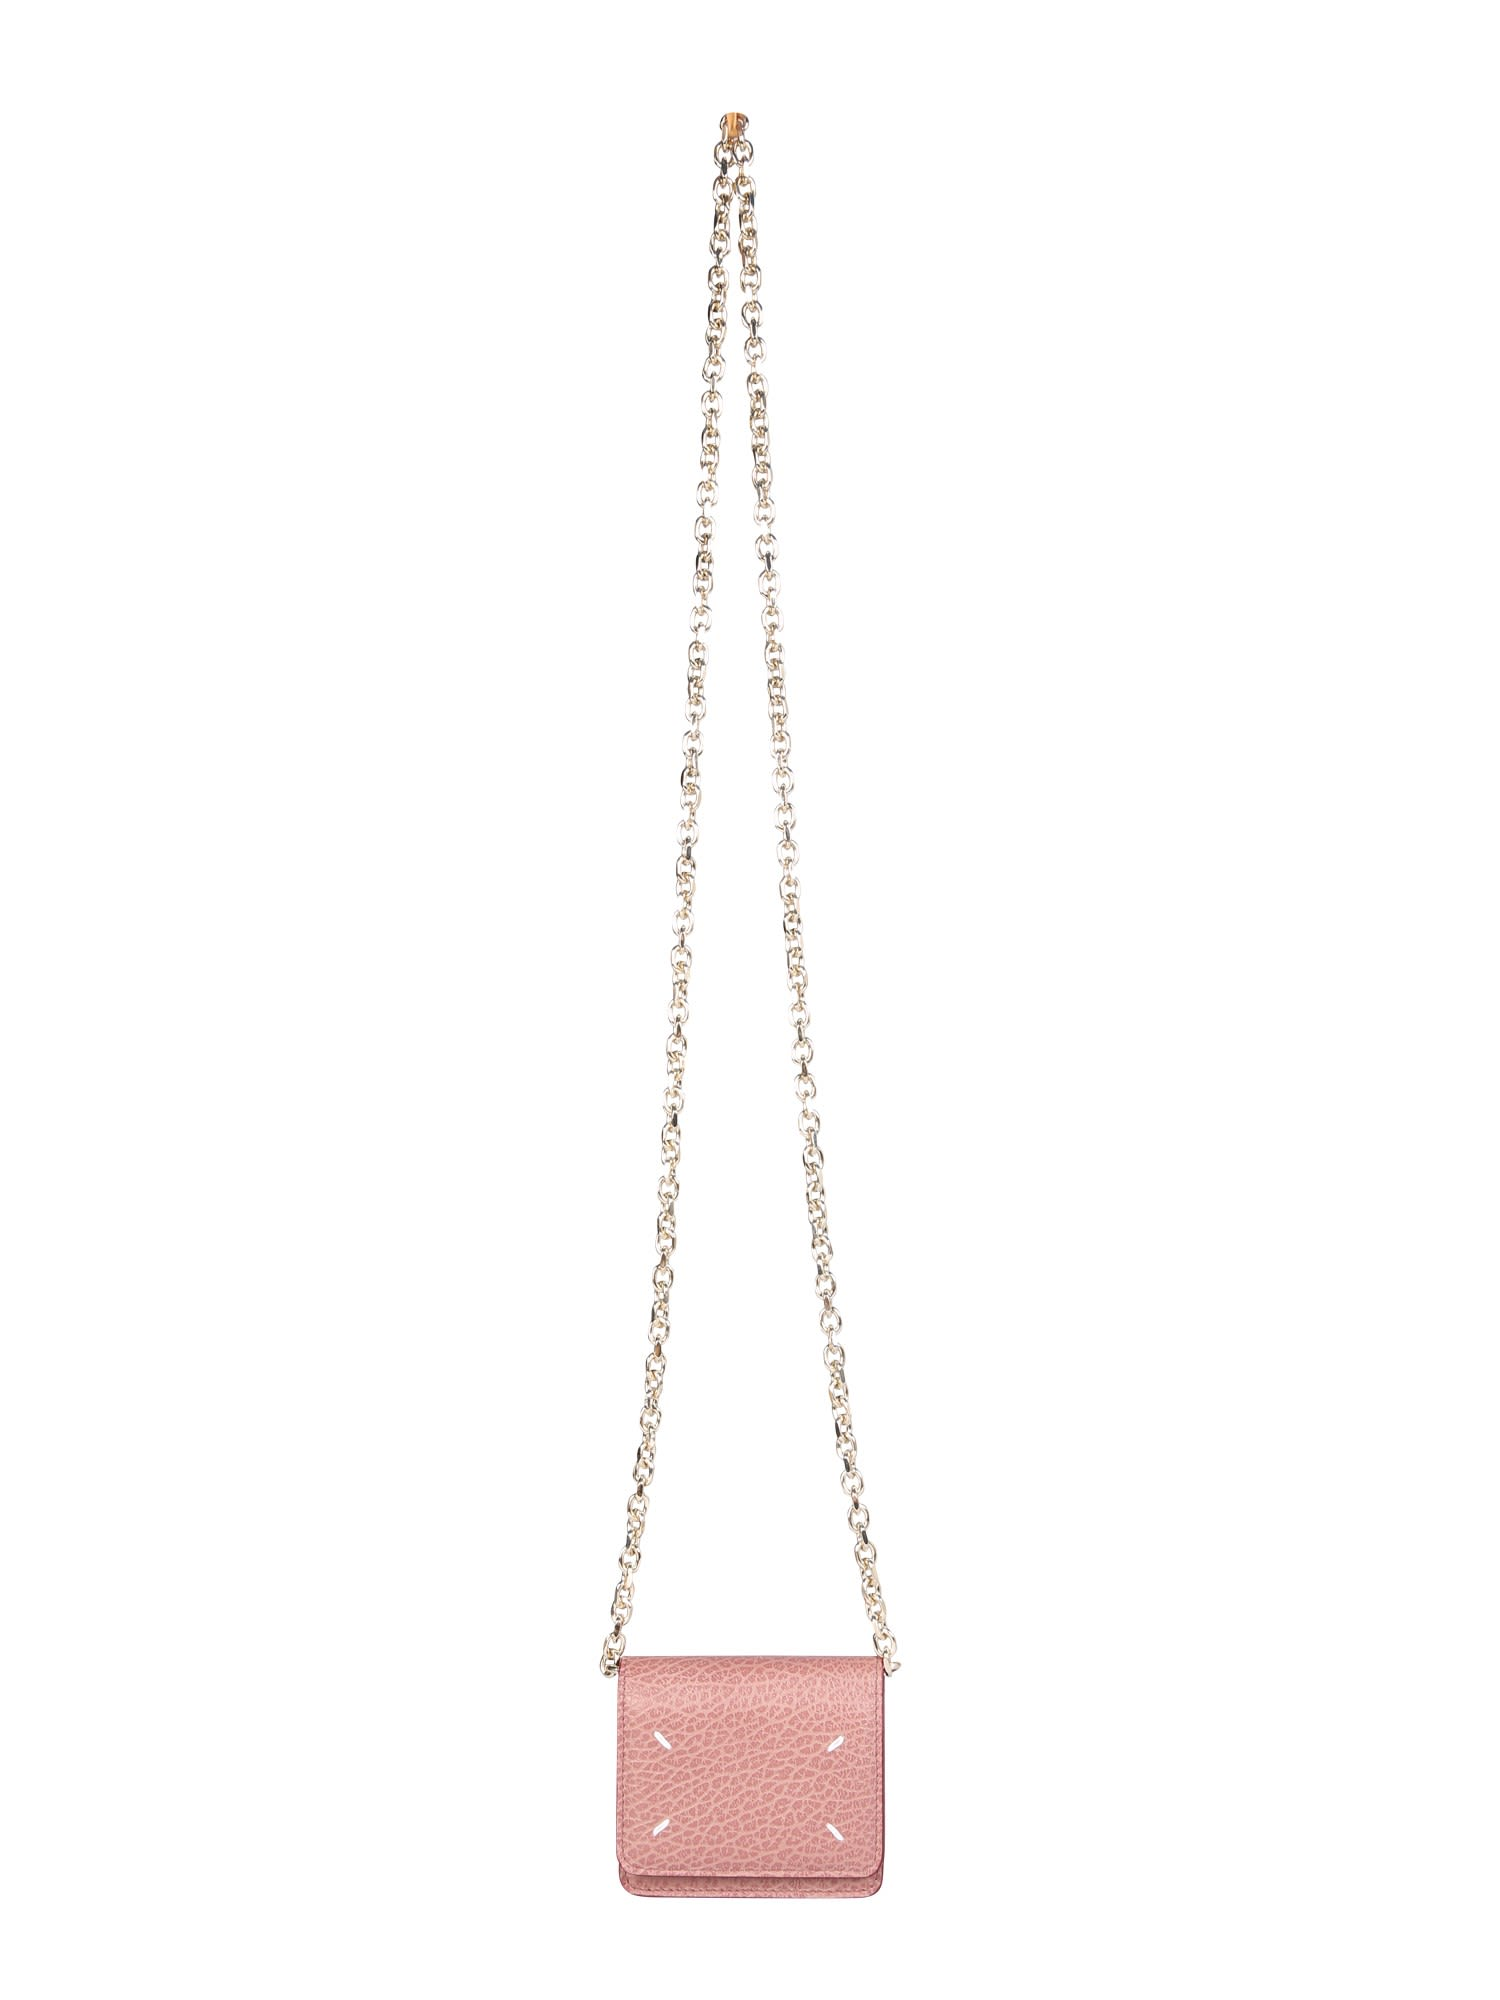 Maison Margiela SMALL WALLET WITH CHAIN